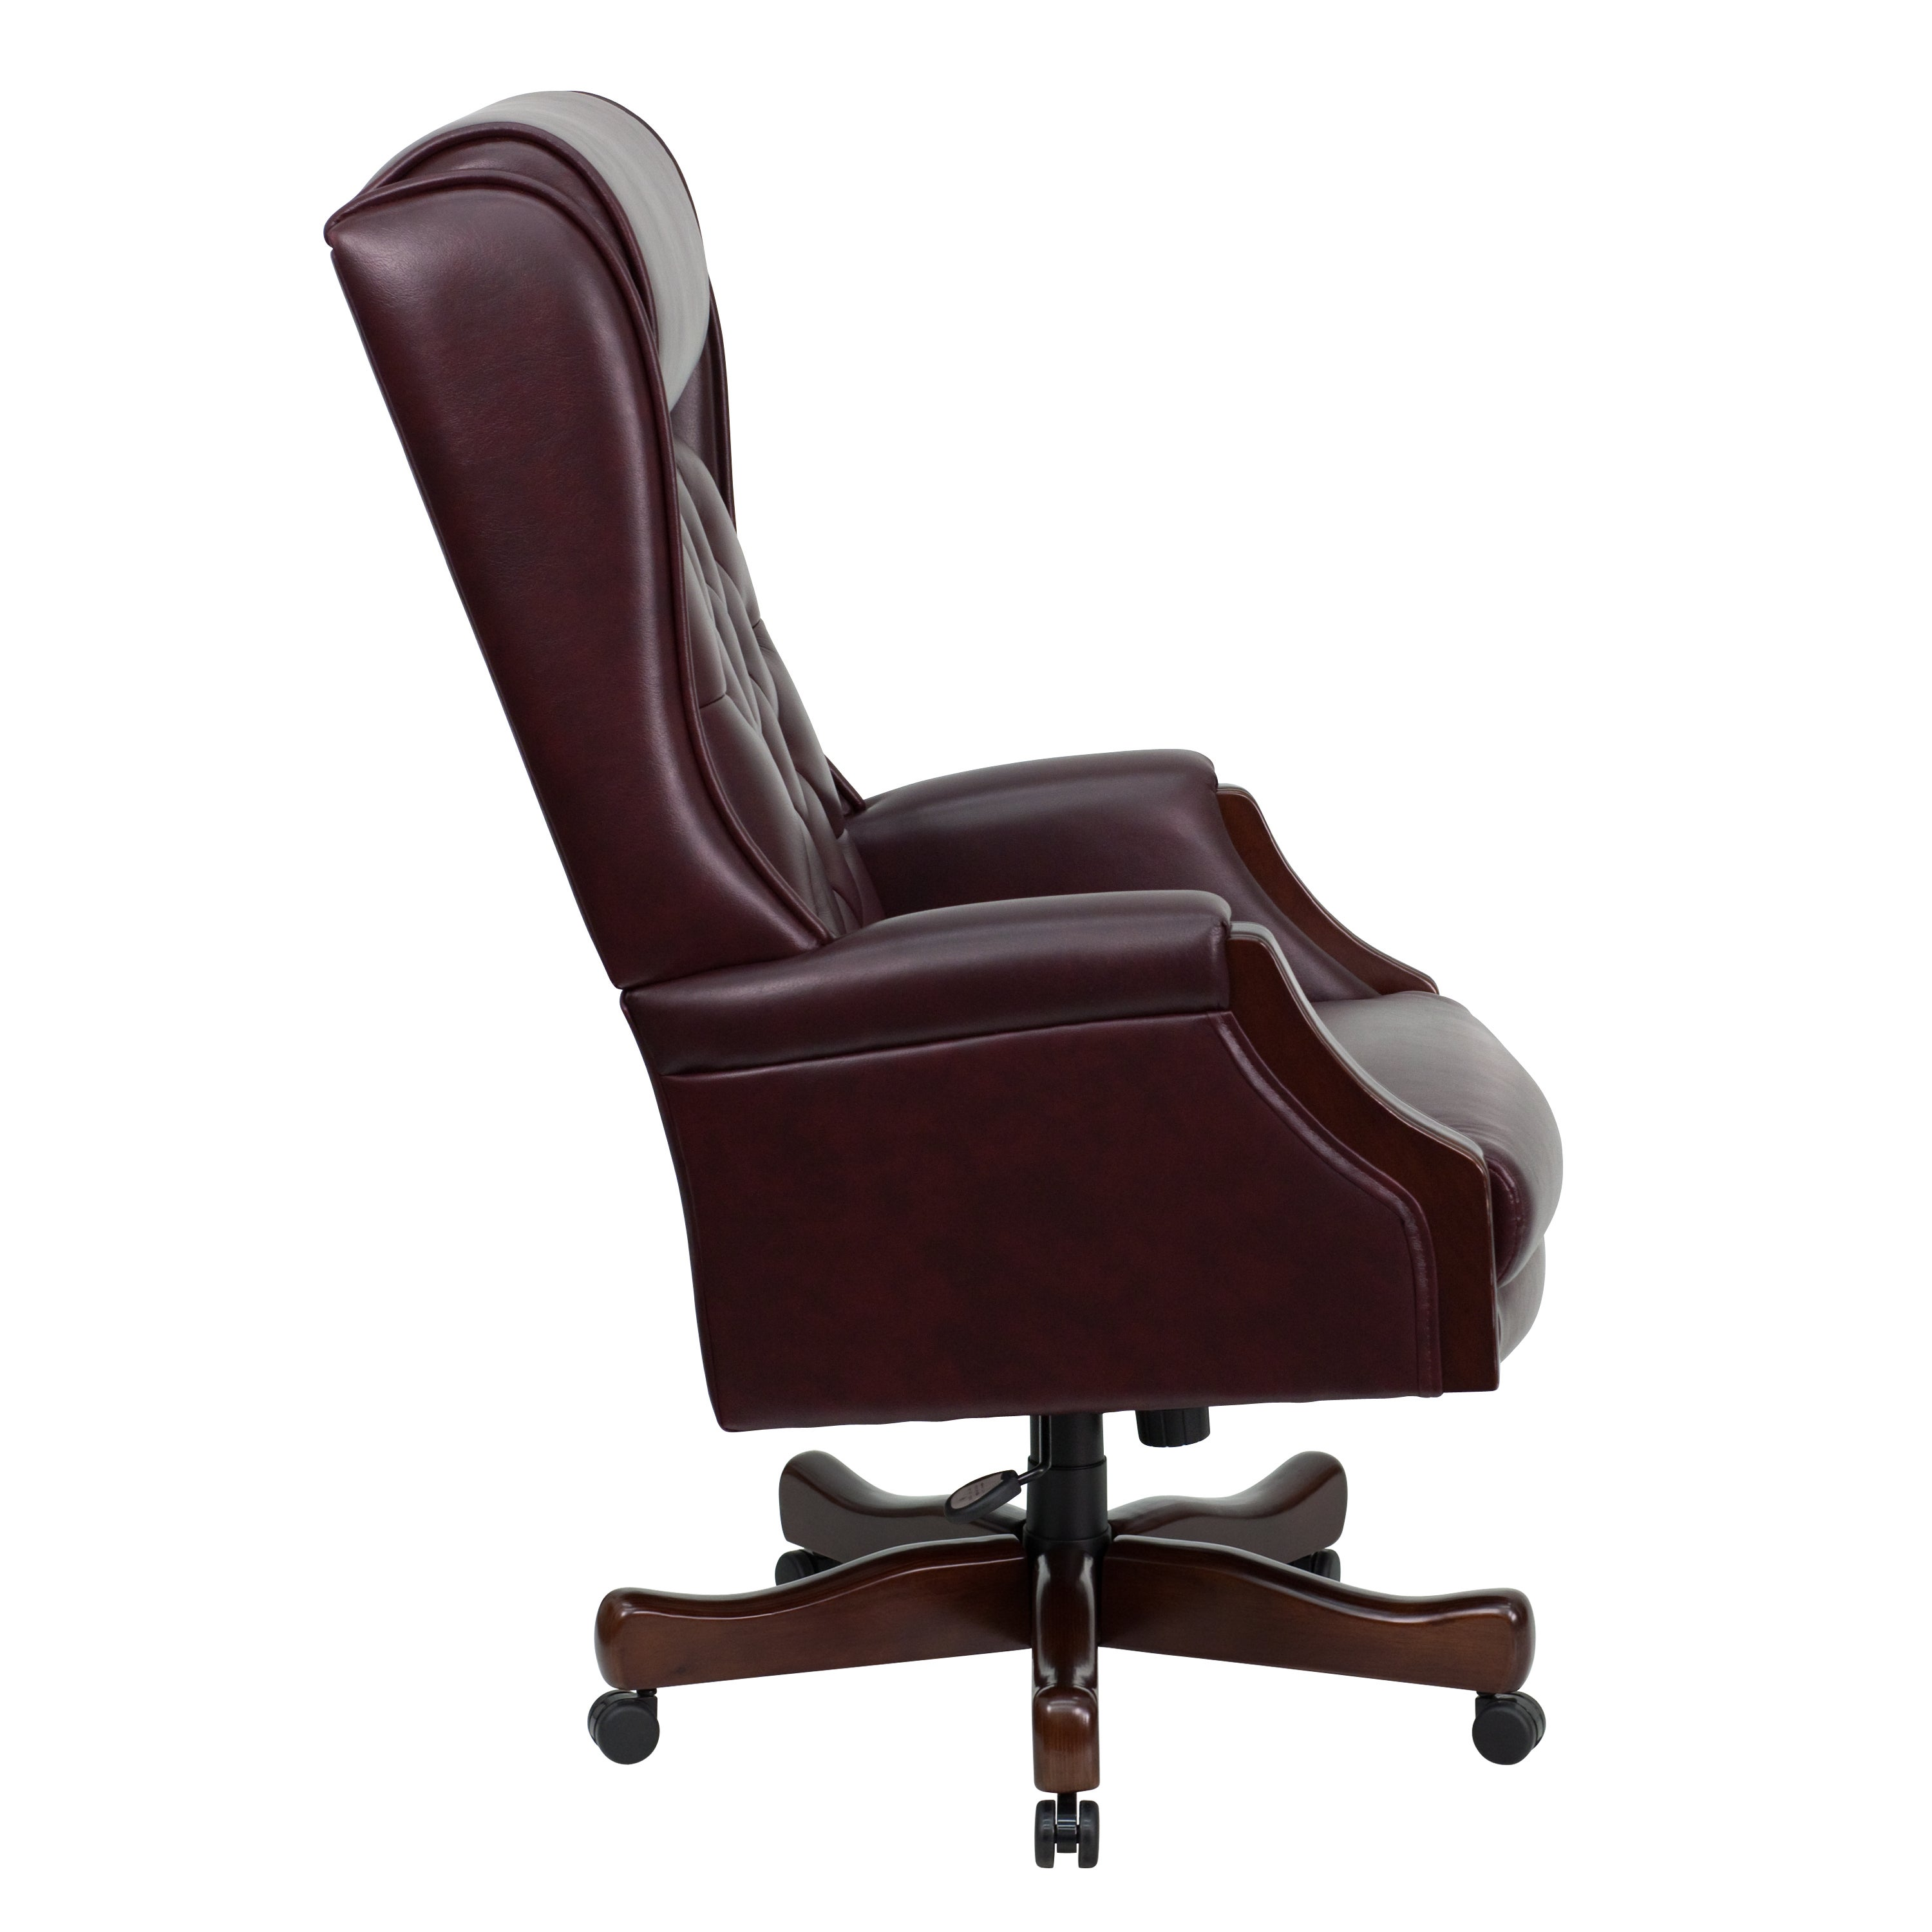 presidential office chair. Presidential Button Tufted Burgundy Leather Executive Swivel Adjustable Office Chair - Free Shipping Today Overstock.com 18437198 C